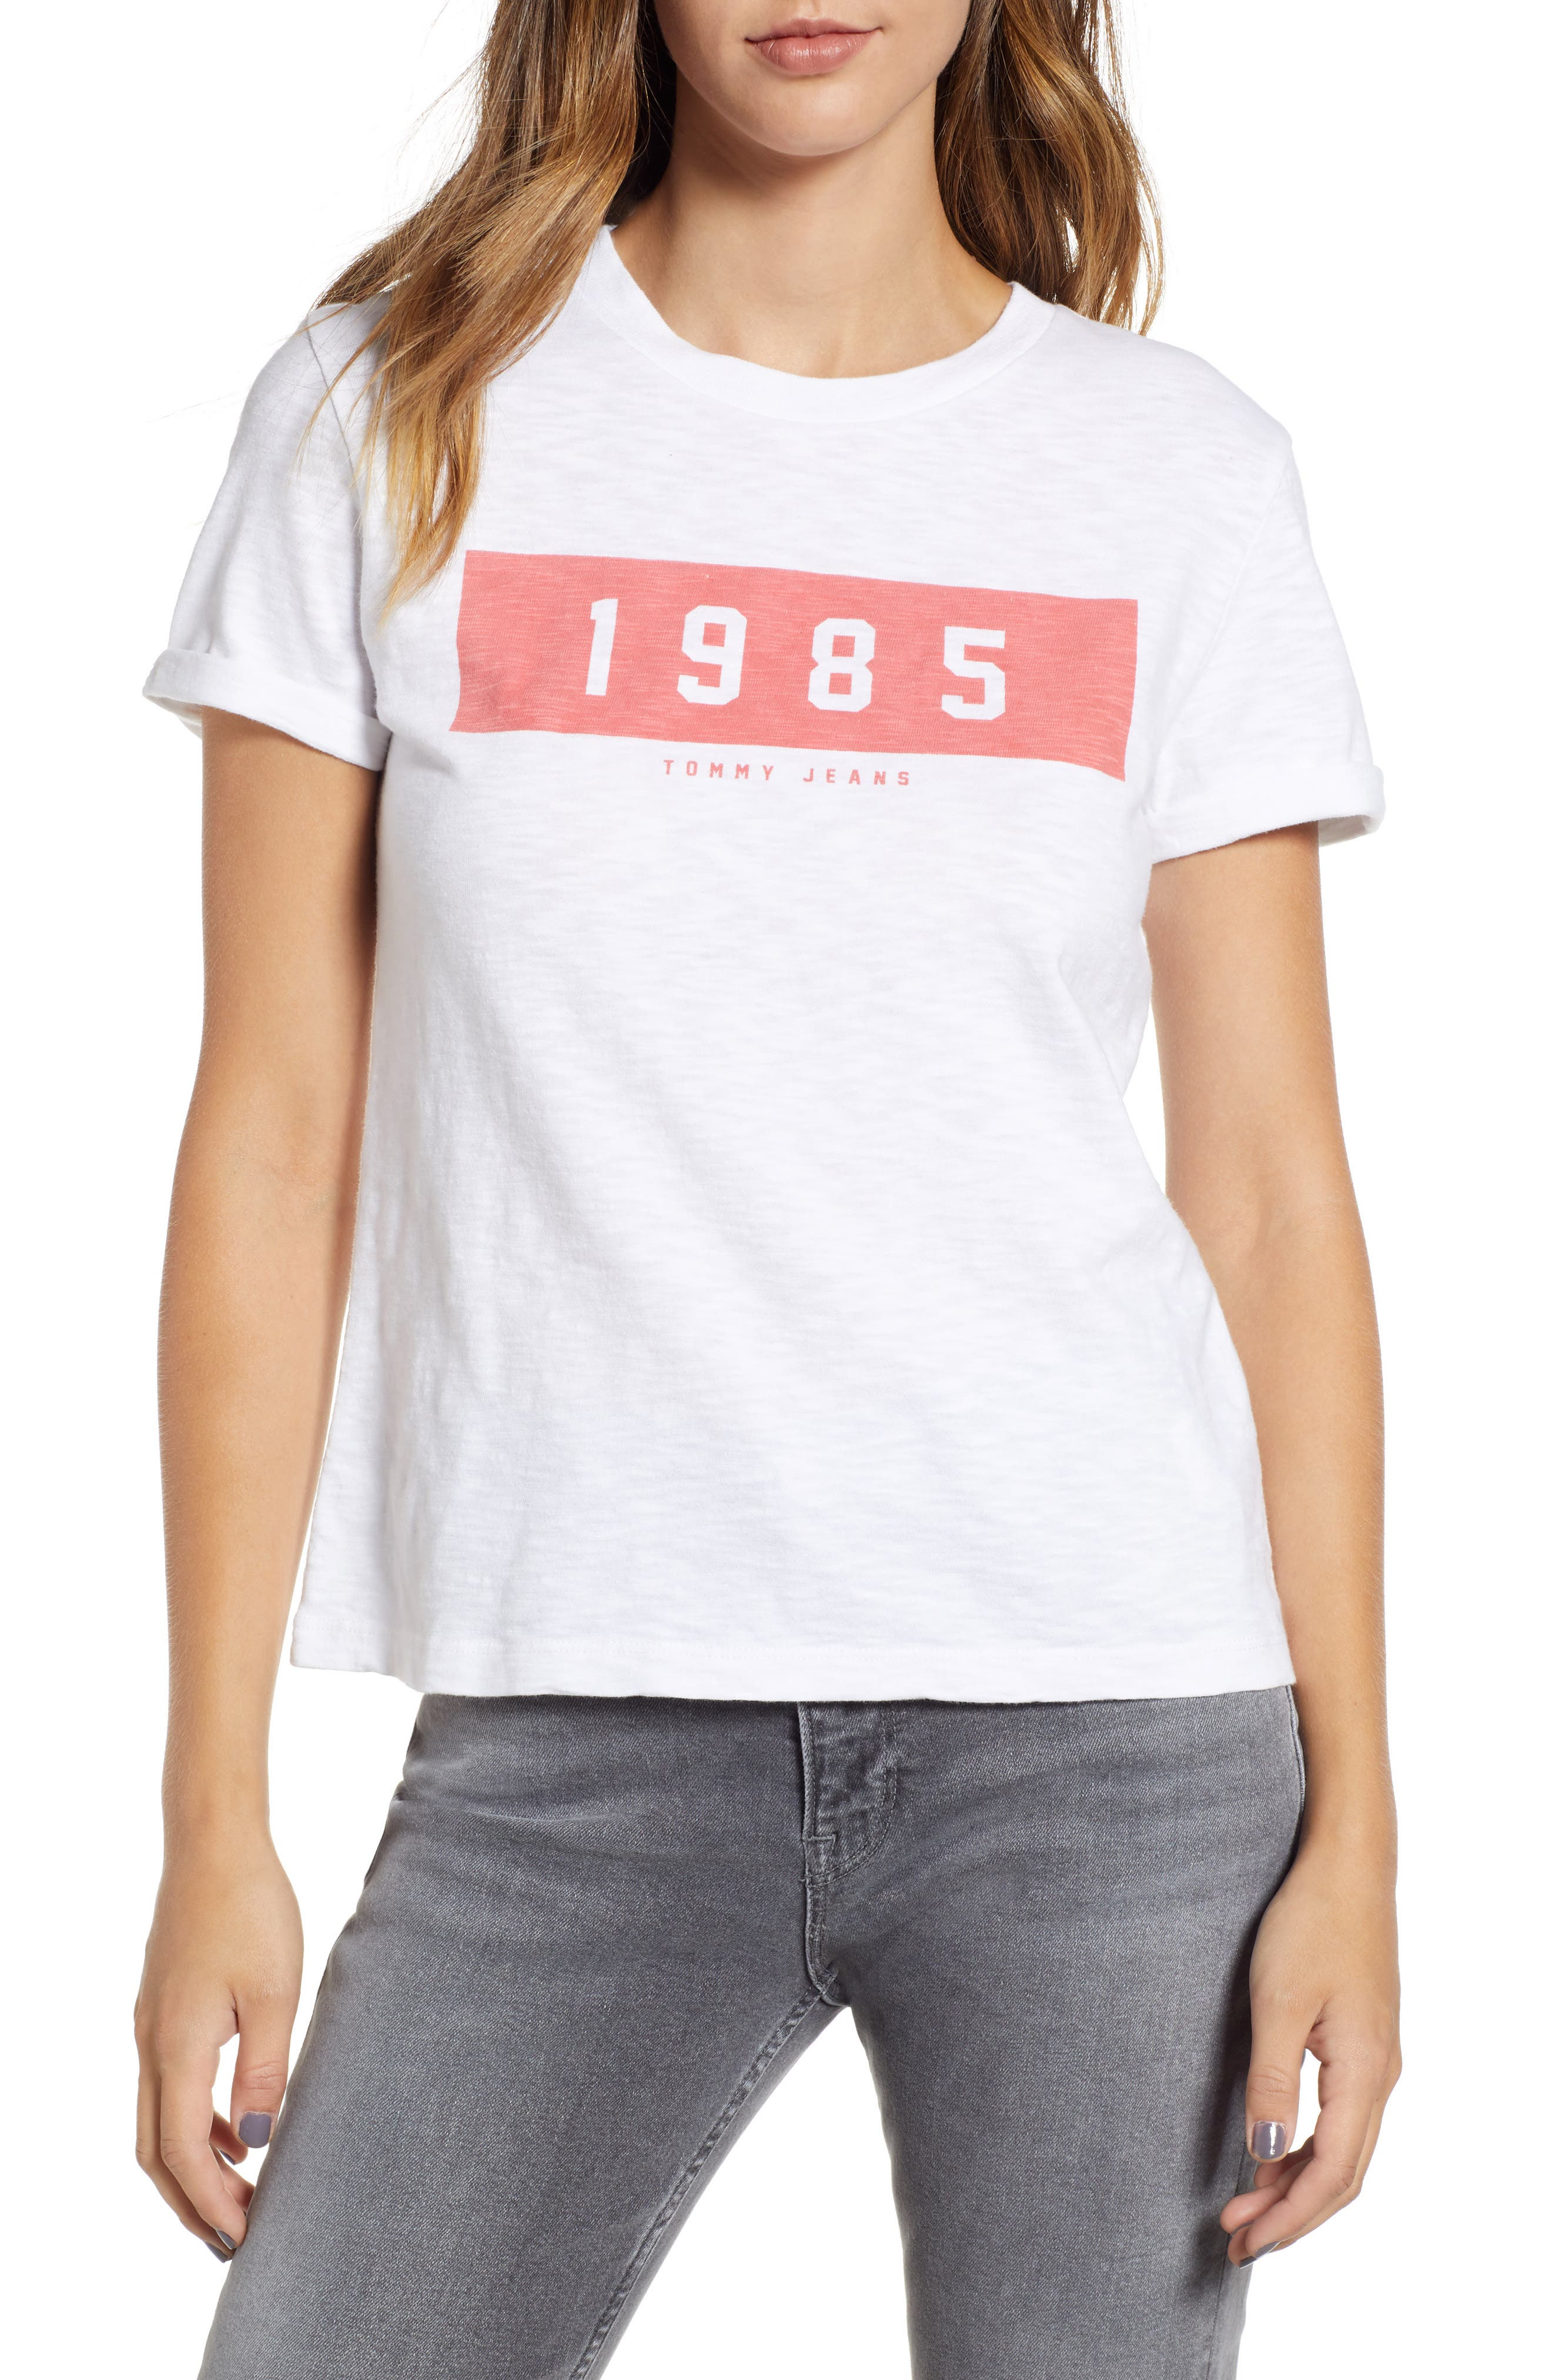 TOMMY JEANS BOLD 1985 TEE